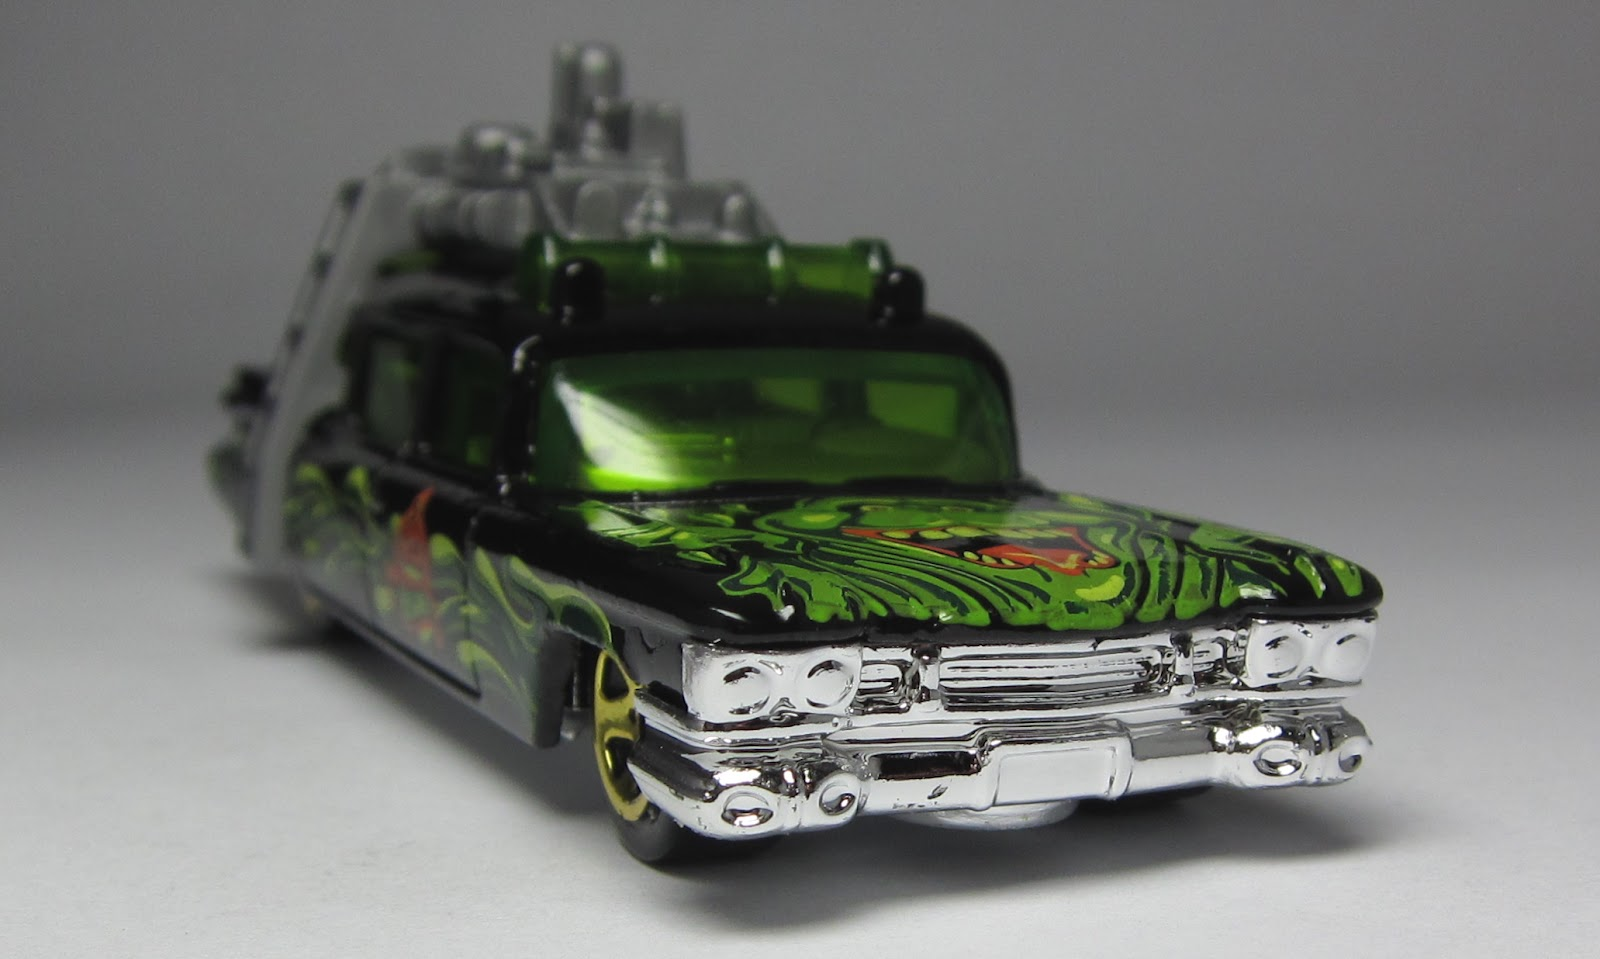 first look hot wheels halloween exclusive 1966 batmobile and ghostbusters ecto 1 - Hot Wheels Cars 2012